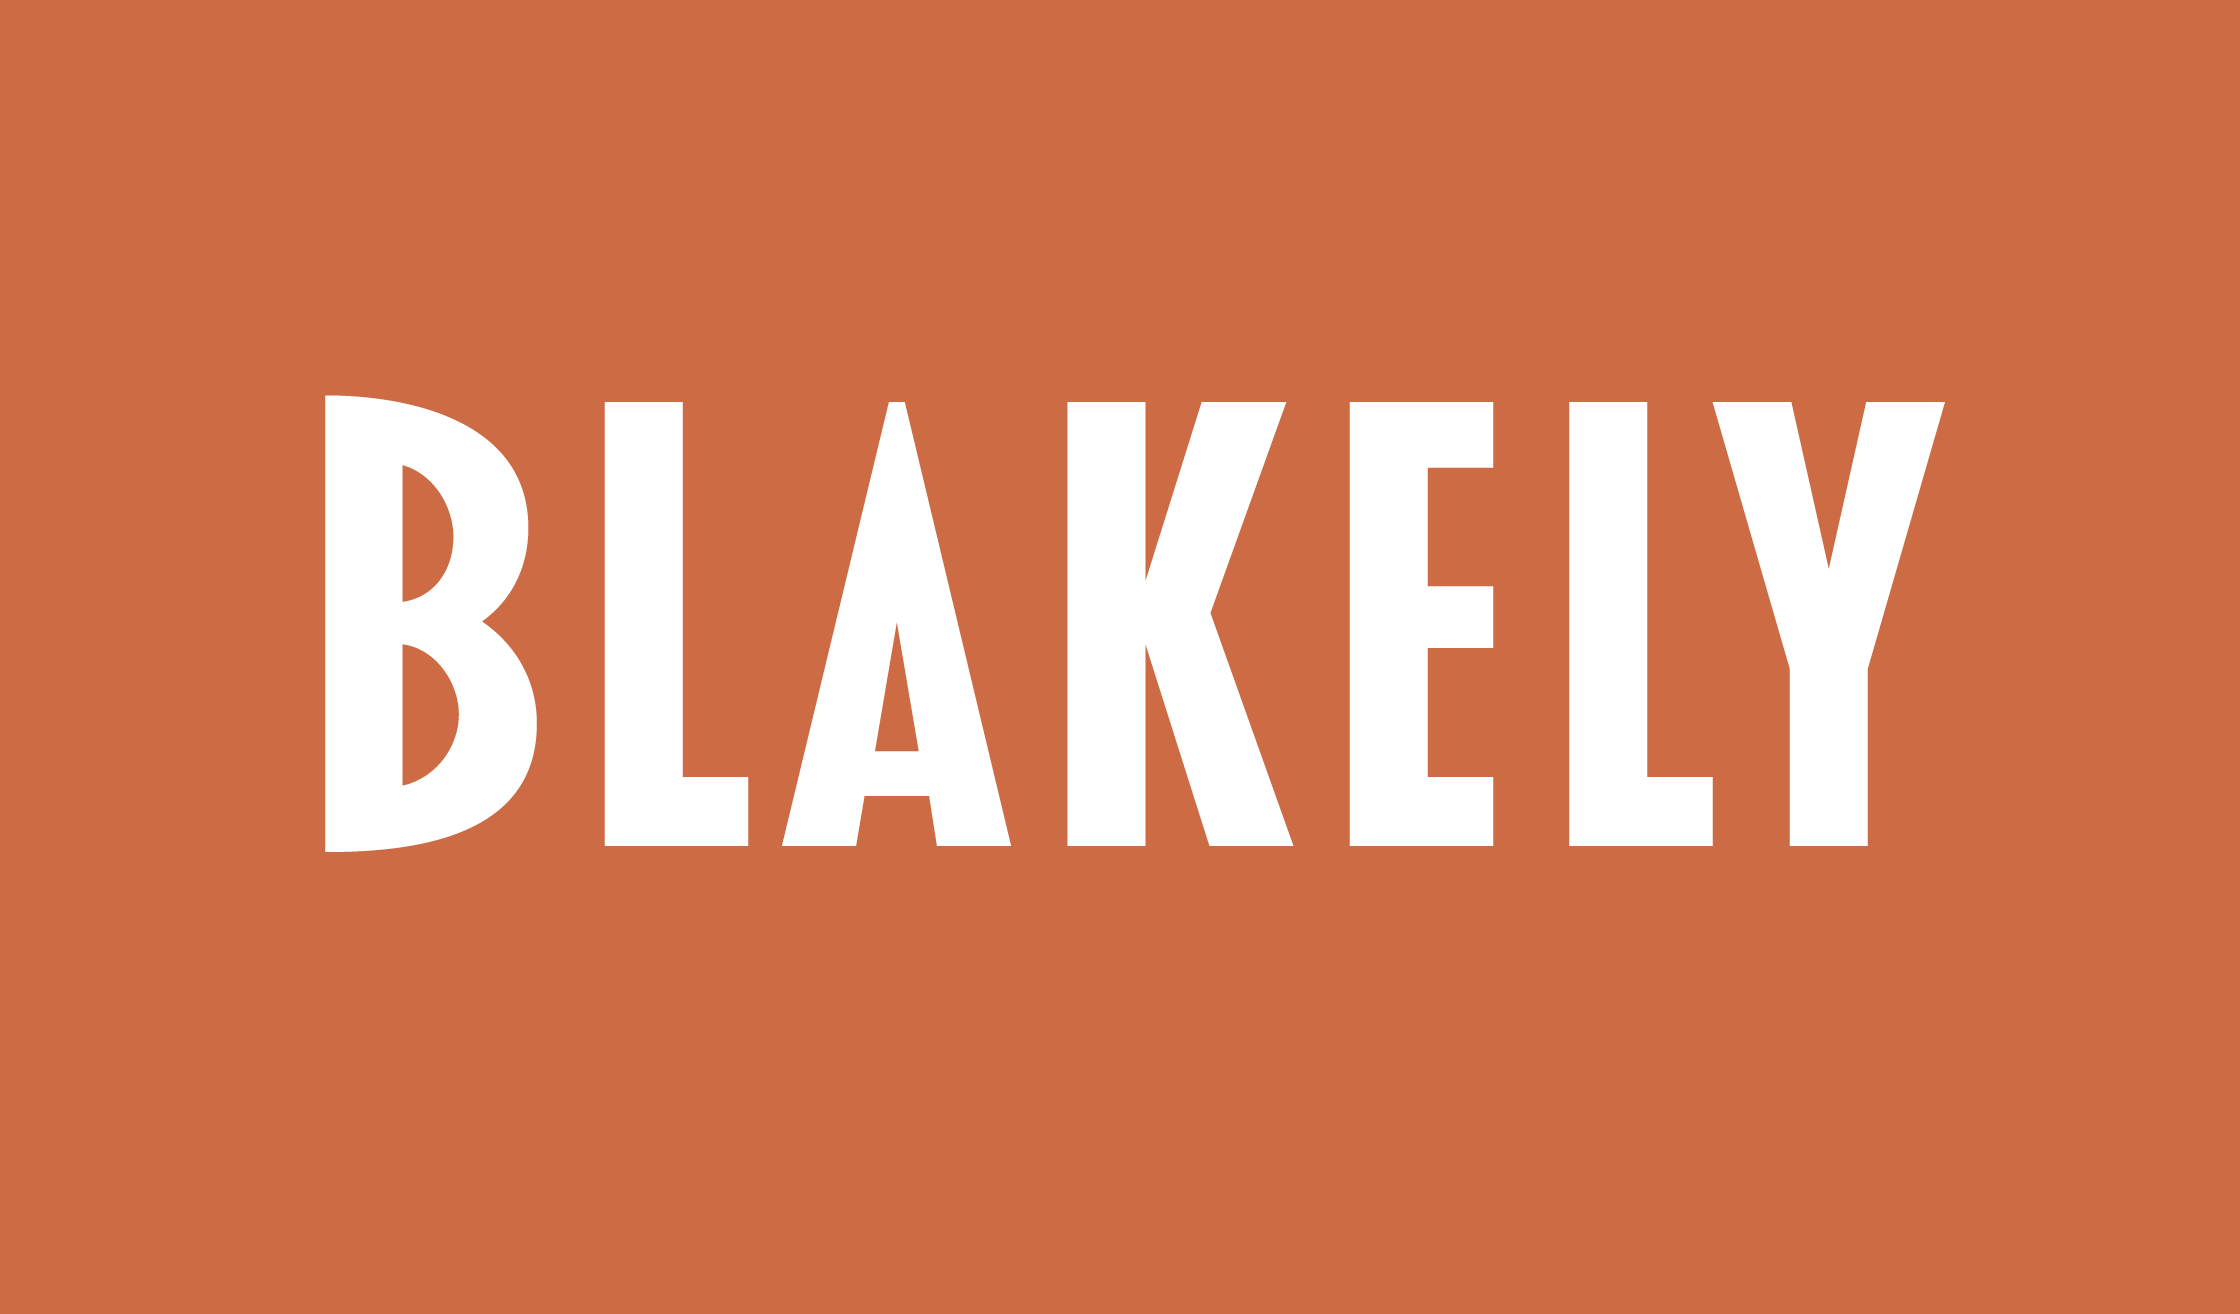 Blakely Banner Name 2240